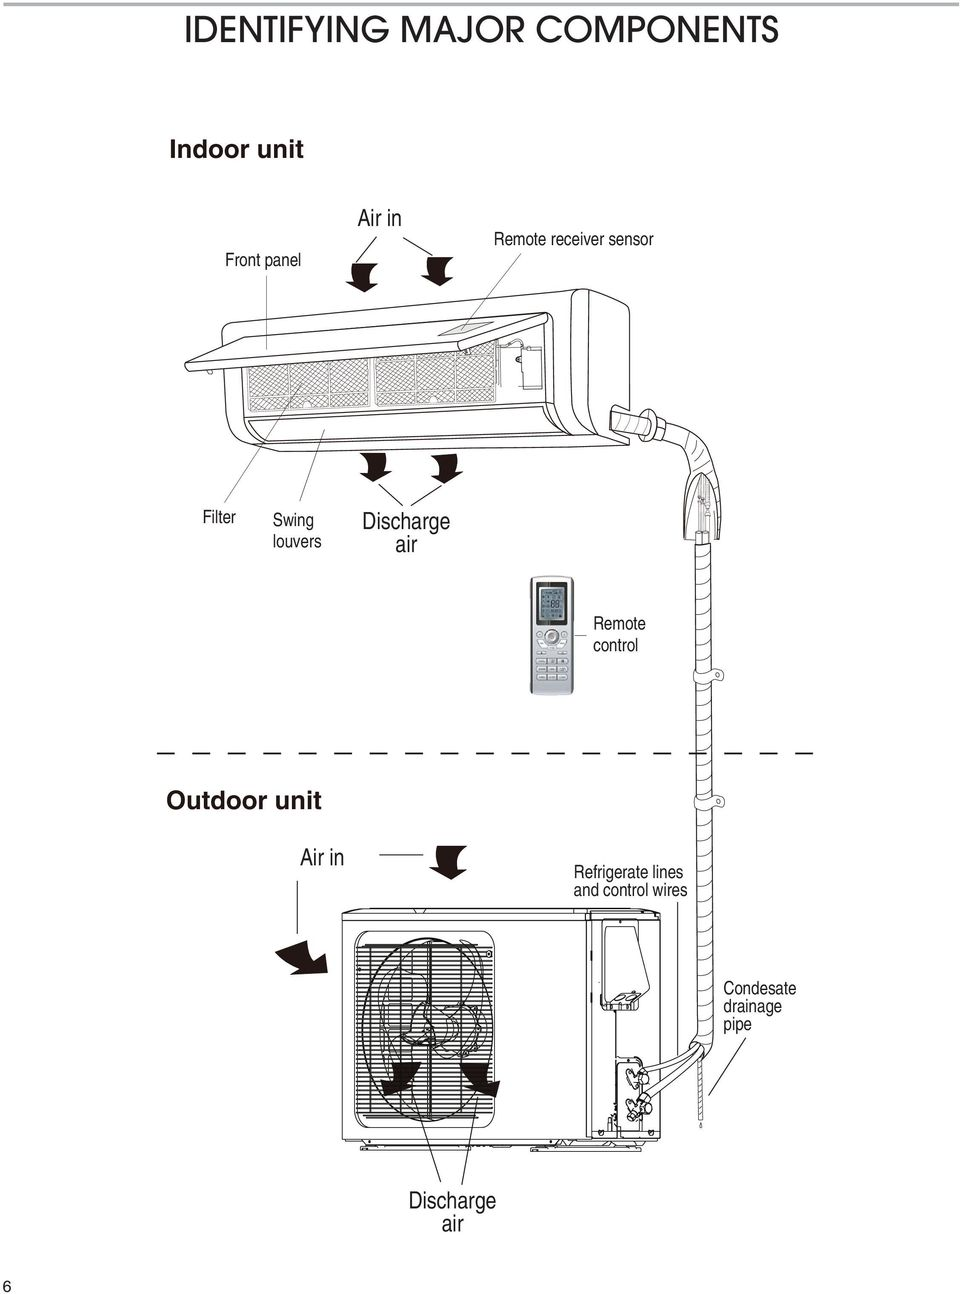 air Remote control Outdoor unit Air in Refrigerate lines